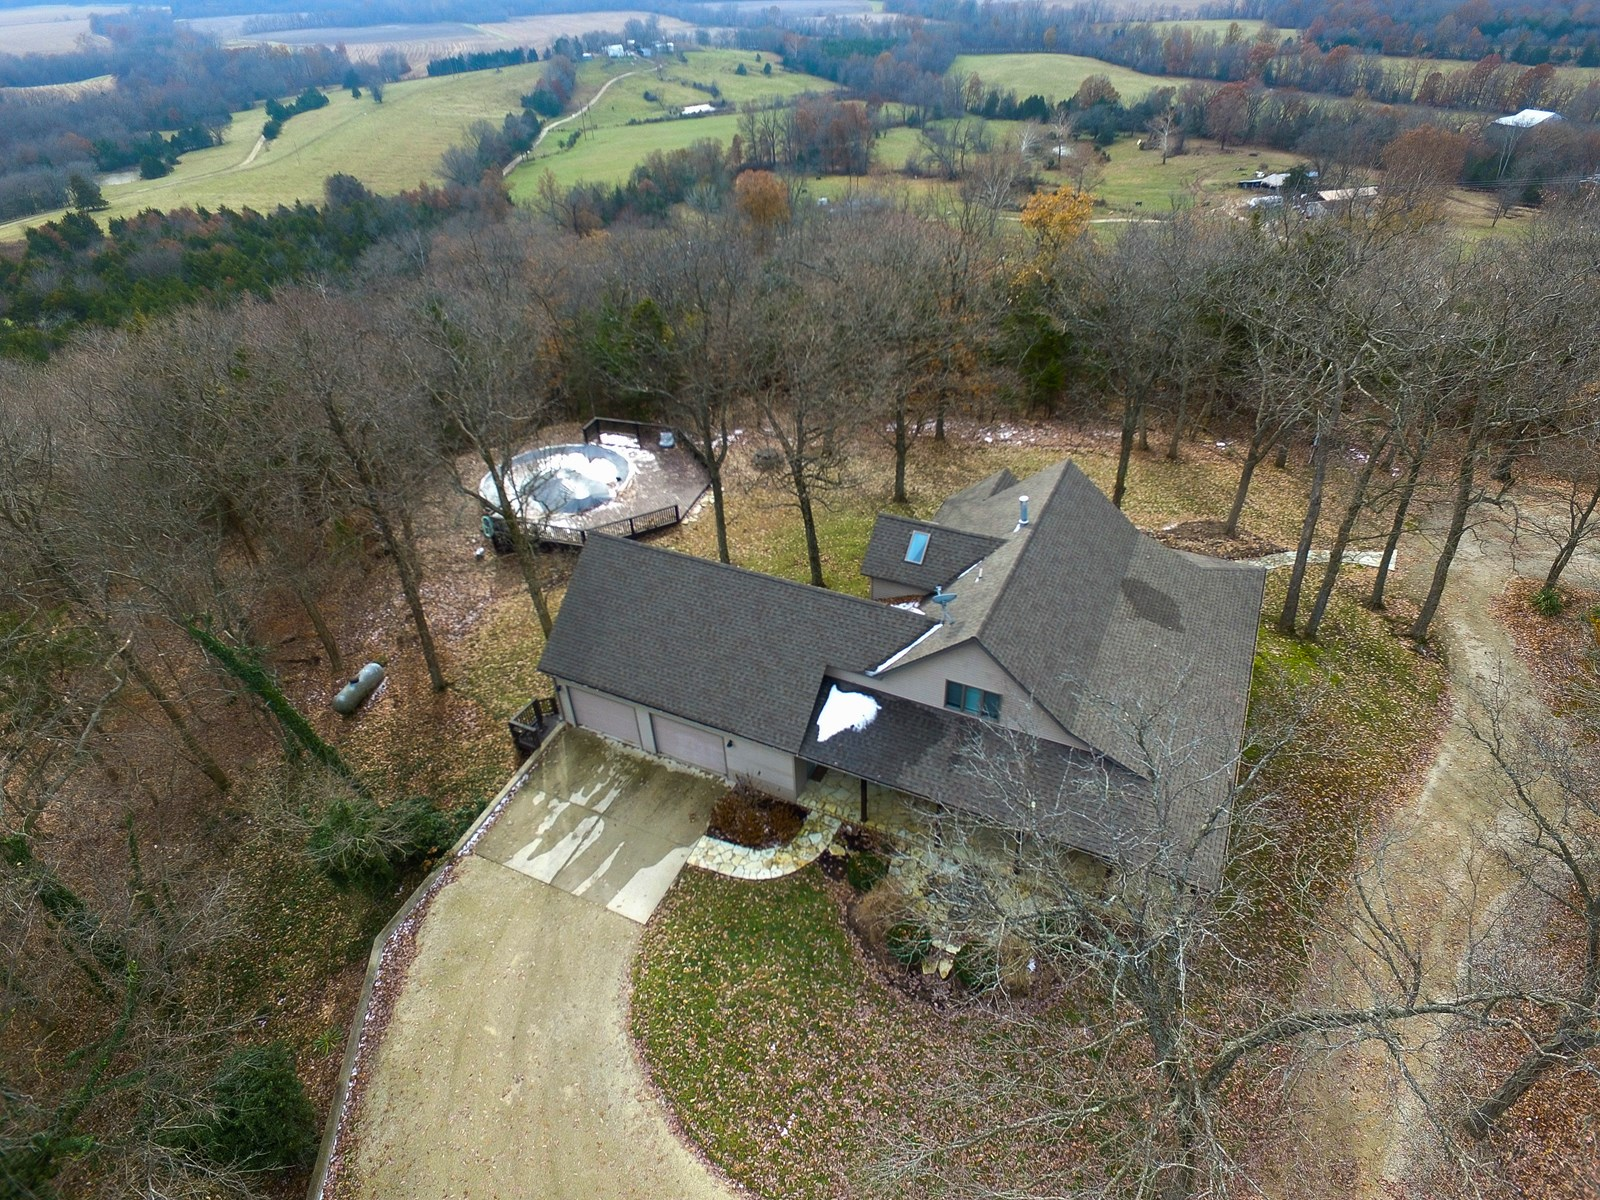 Country Home & Wooded Acreage For Sale in Hermann, MO